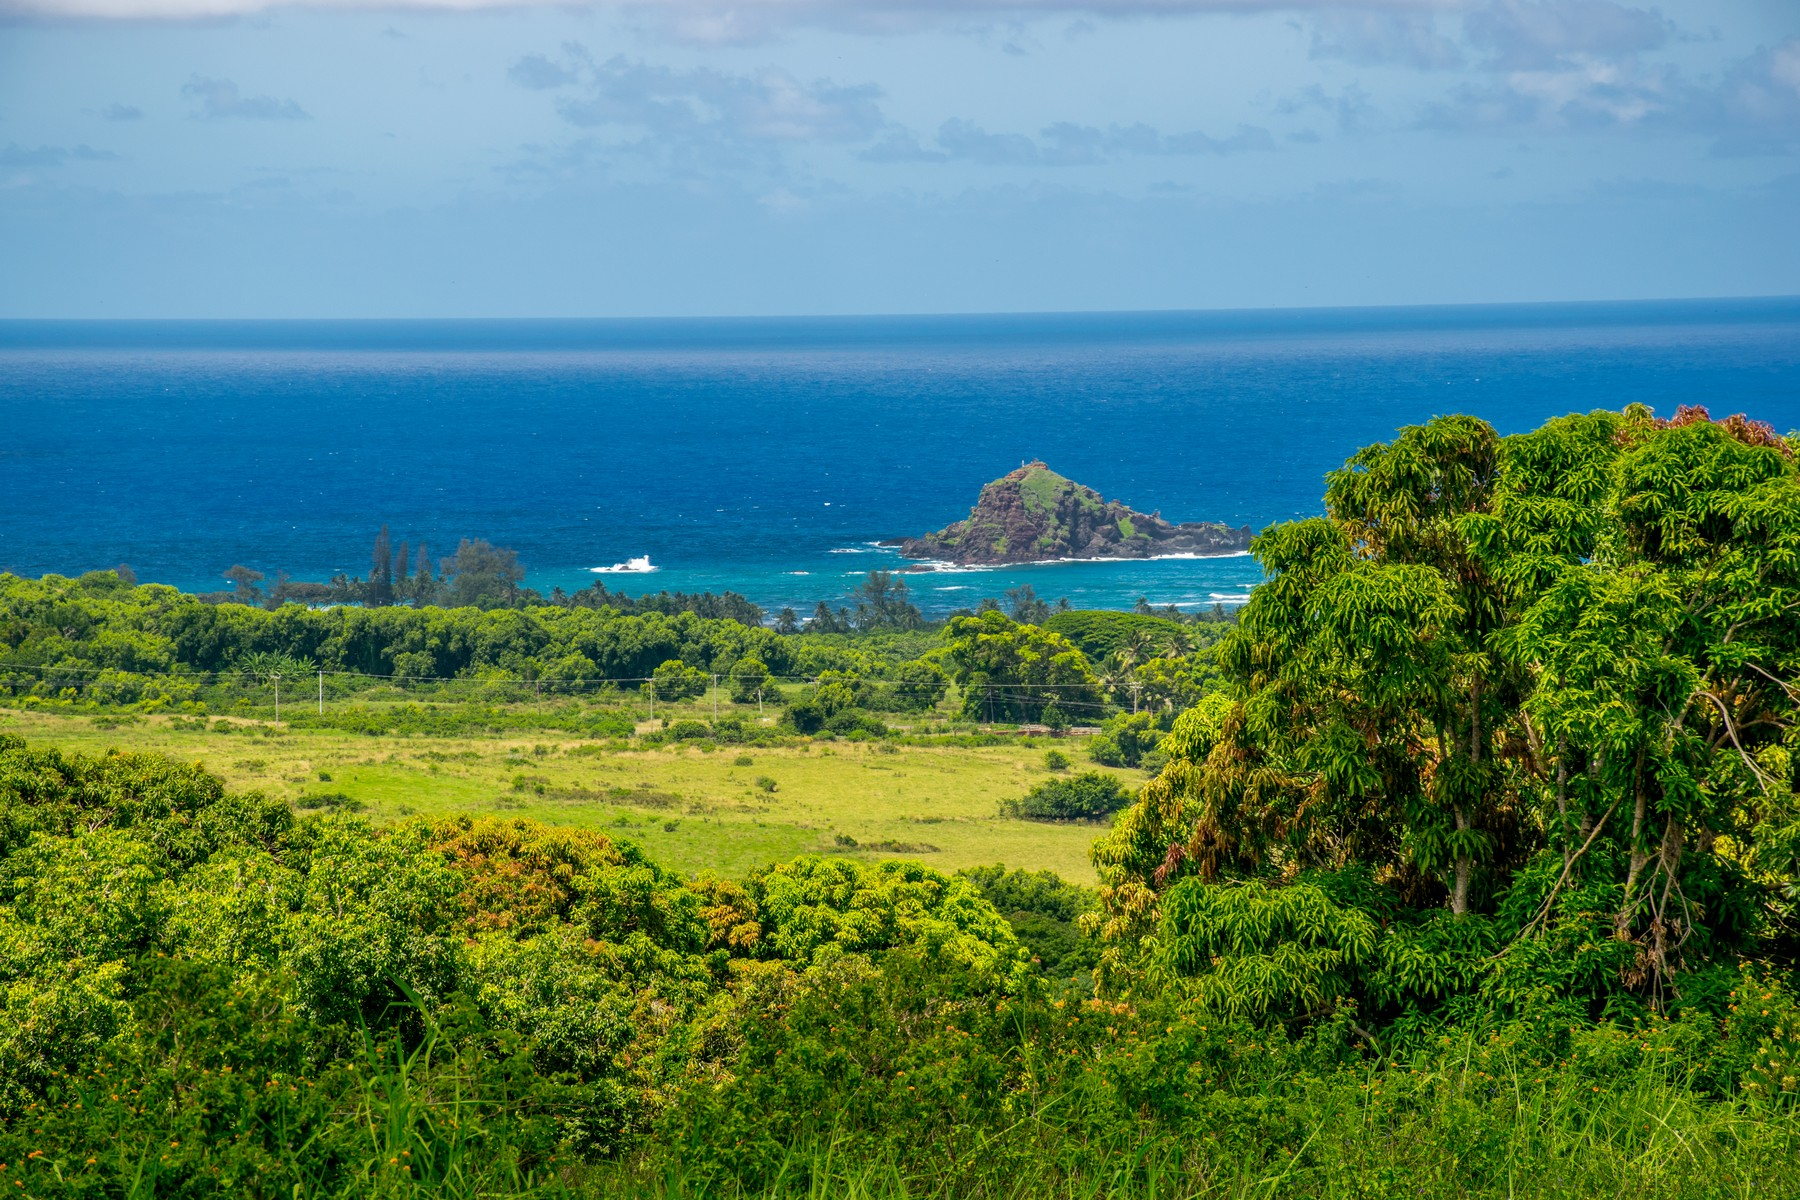 Land for Sale at Over 17 Acres in Majectic Hana 467 Kapia Road, Lot #1-Parcel #26 Hana, Hawaii, 96713 United States